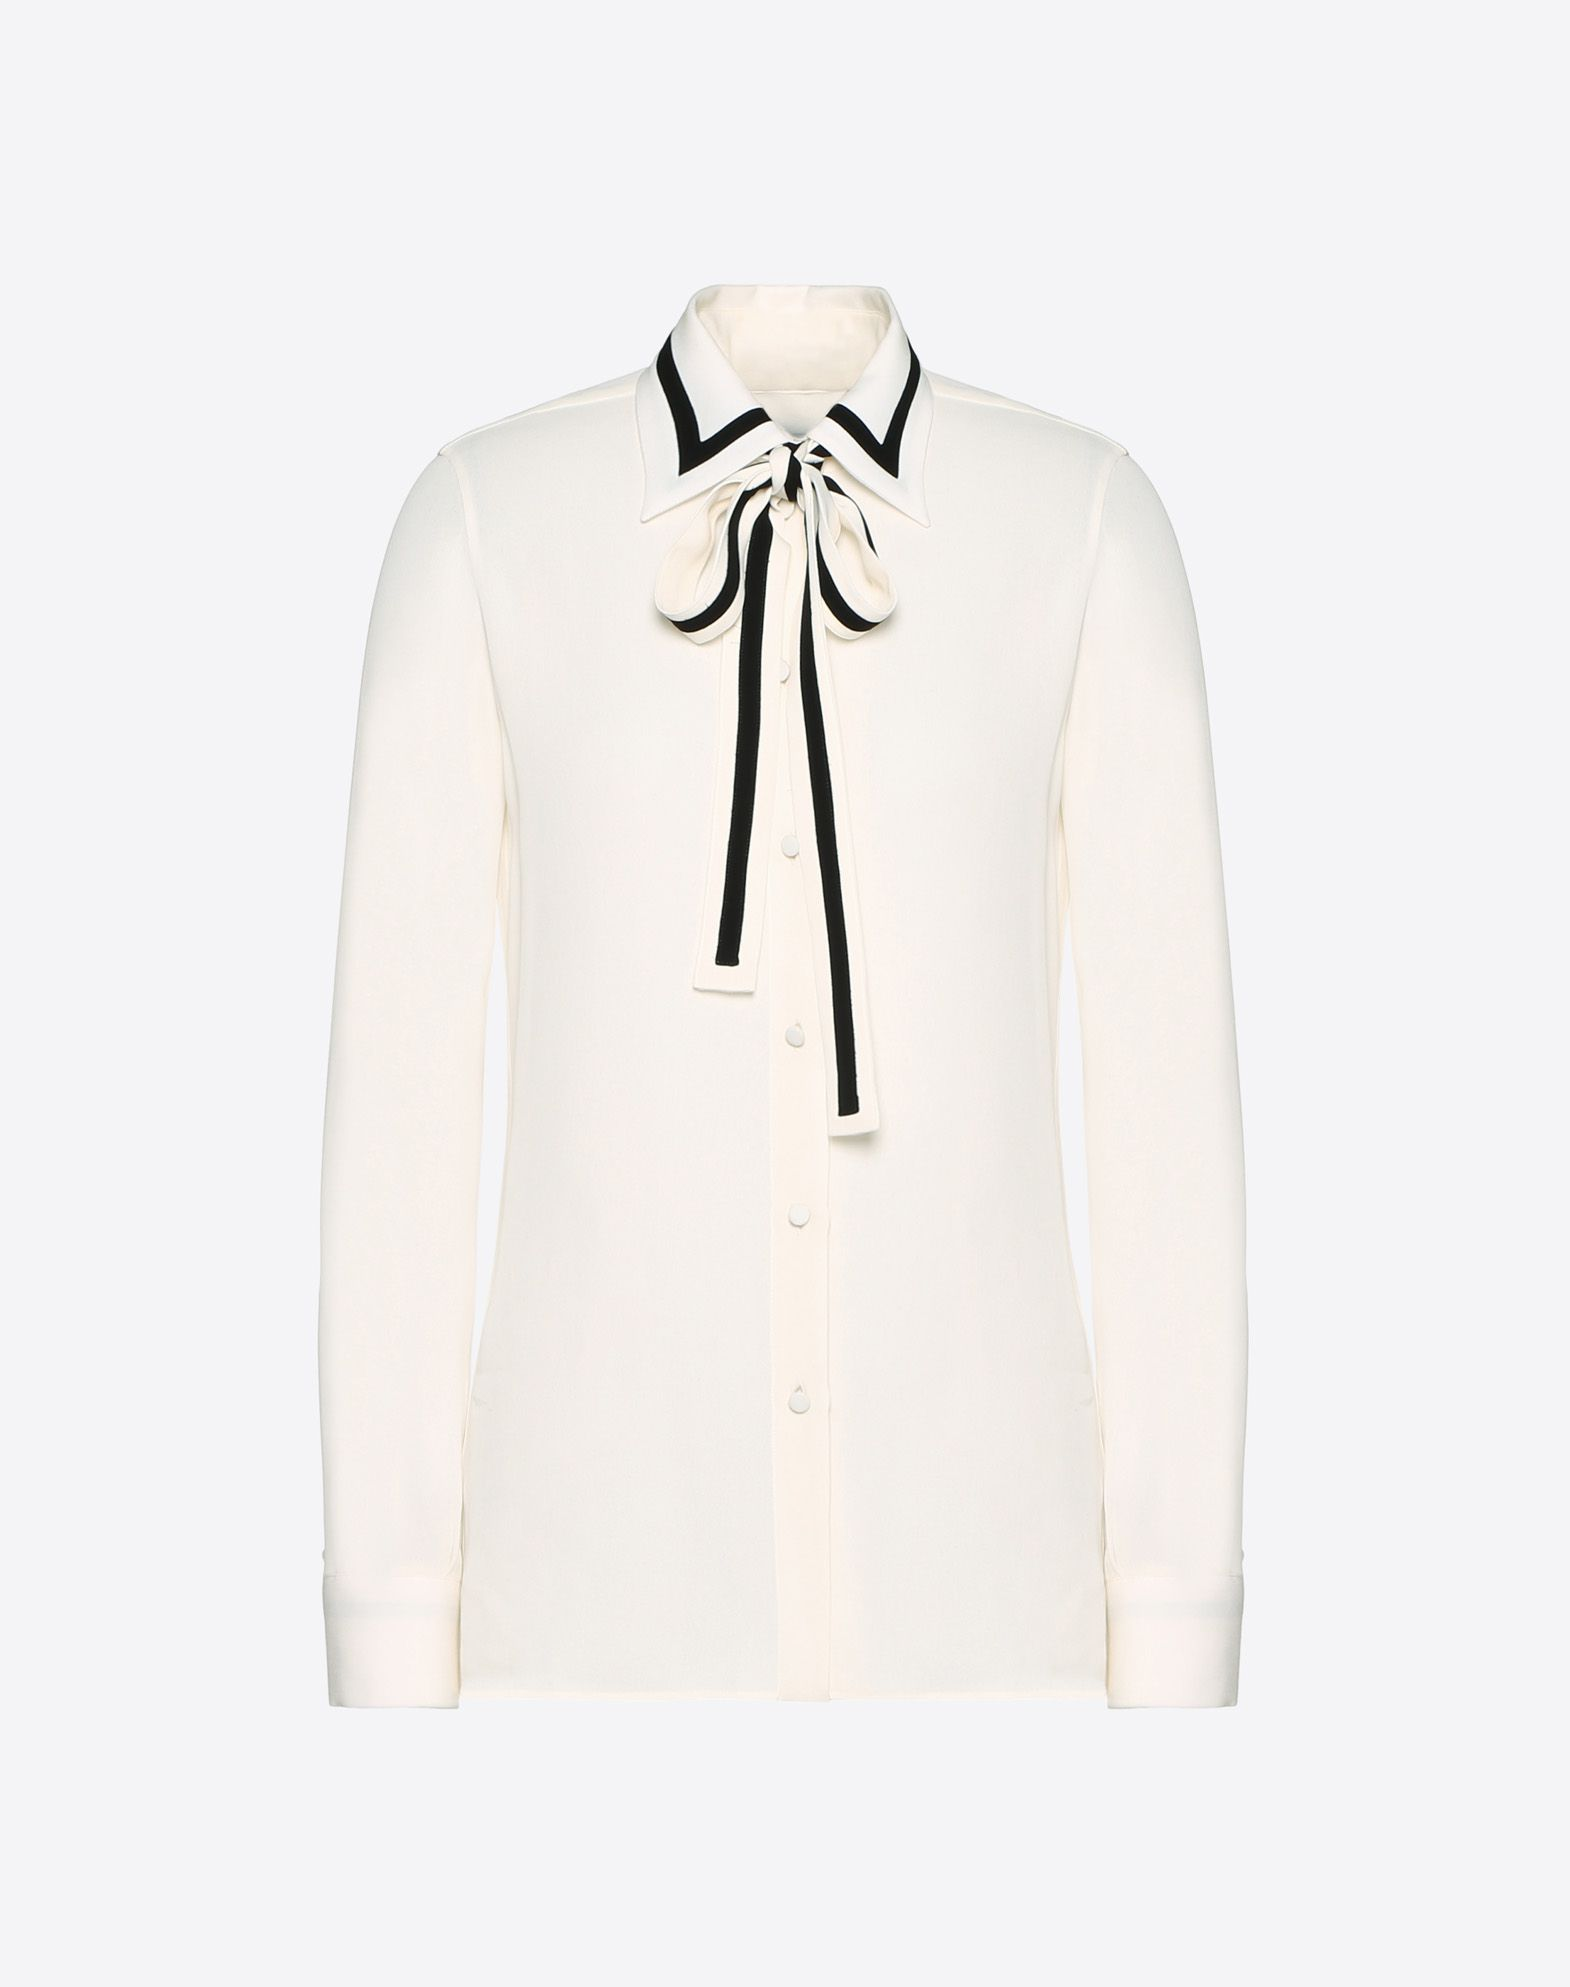 Georgette Shirt with Bow Collar